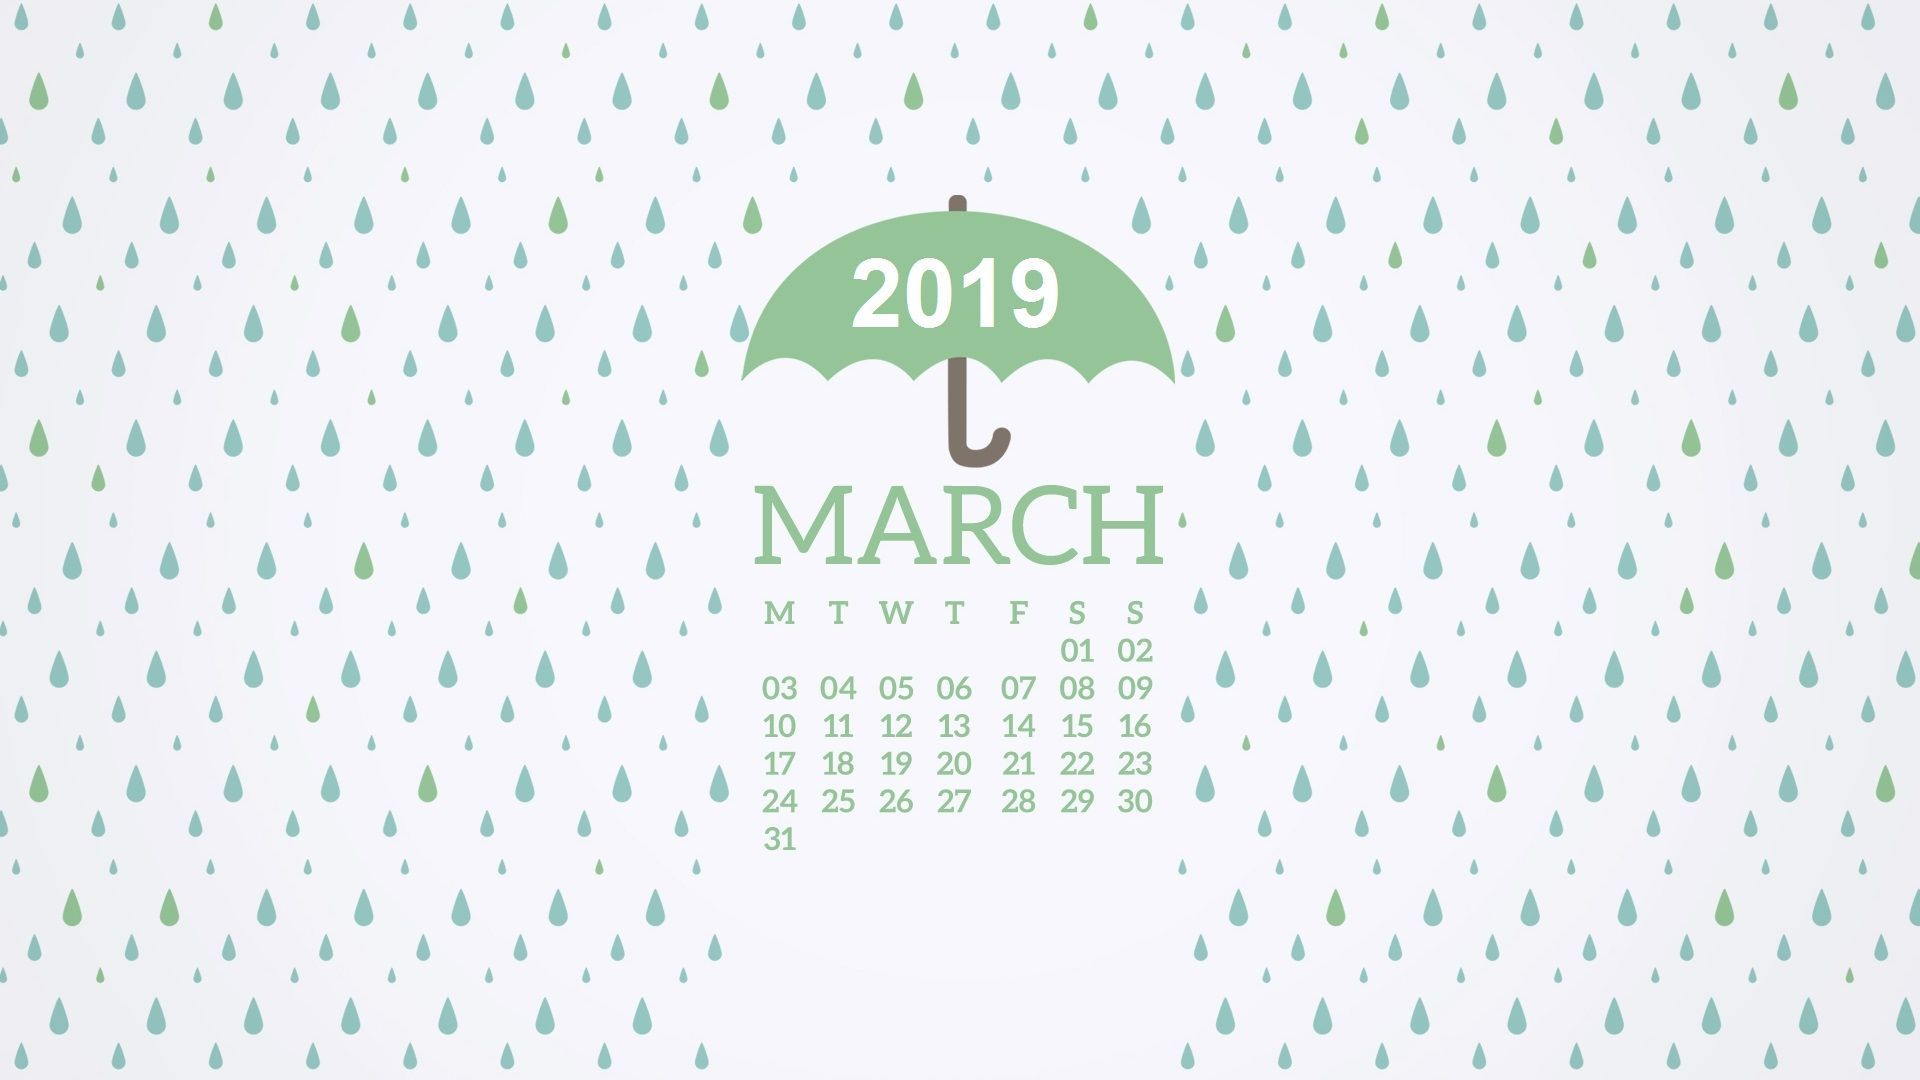 March 2019 Desktop Calendar Wallpaper March2019 2019calendar Desktopcalendar Calendar Wallpaper Desktop Calendar Calendar Background